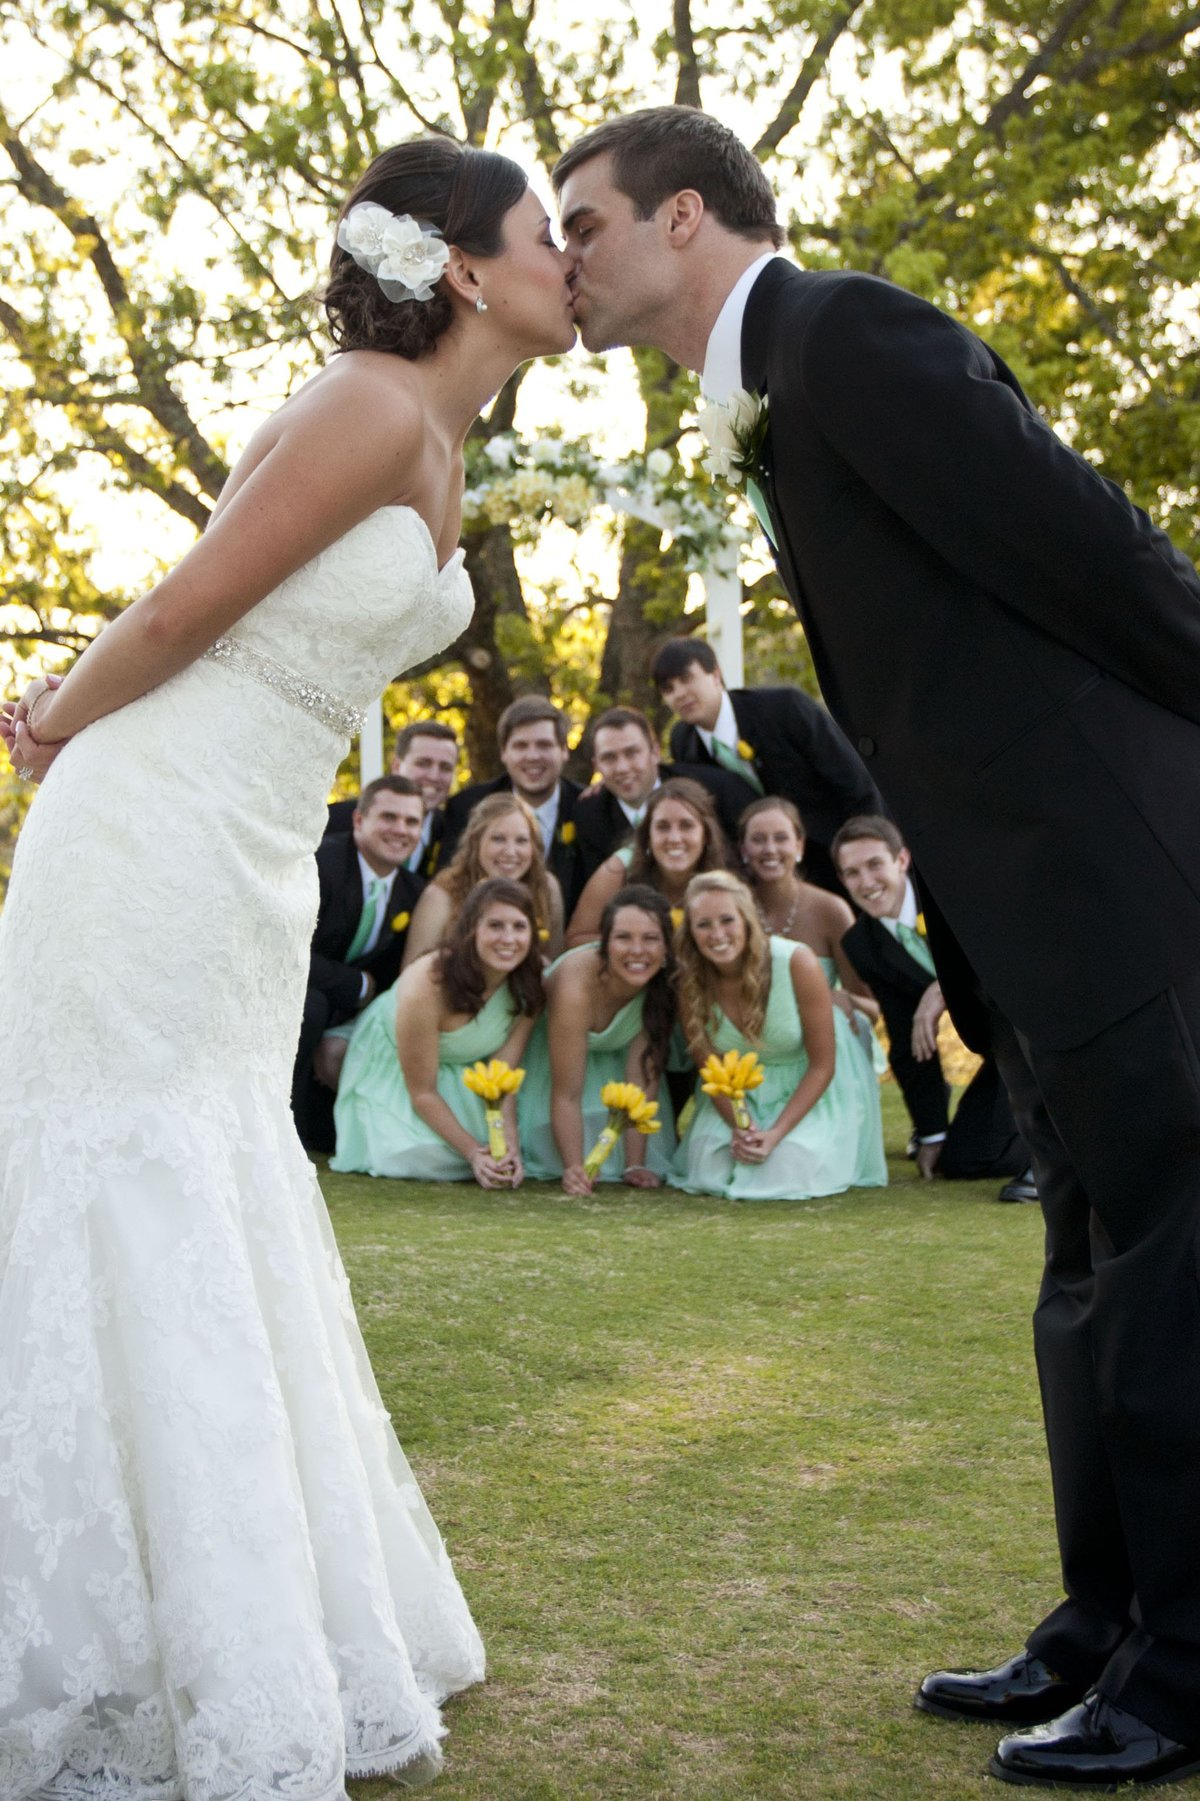 bride and groom kissing with bridal party in the background